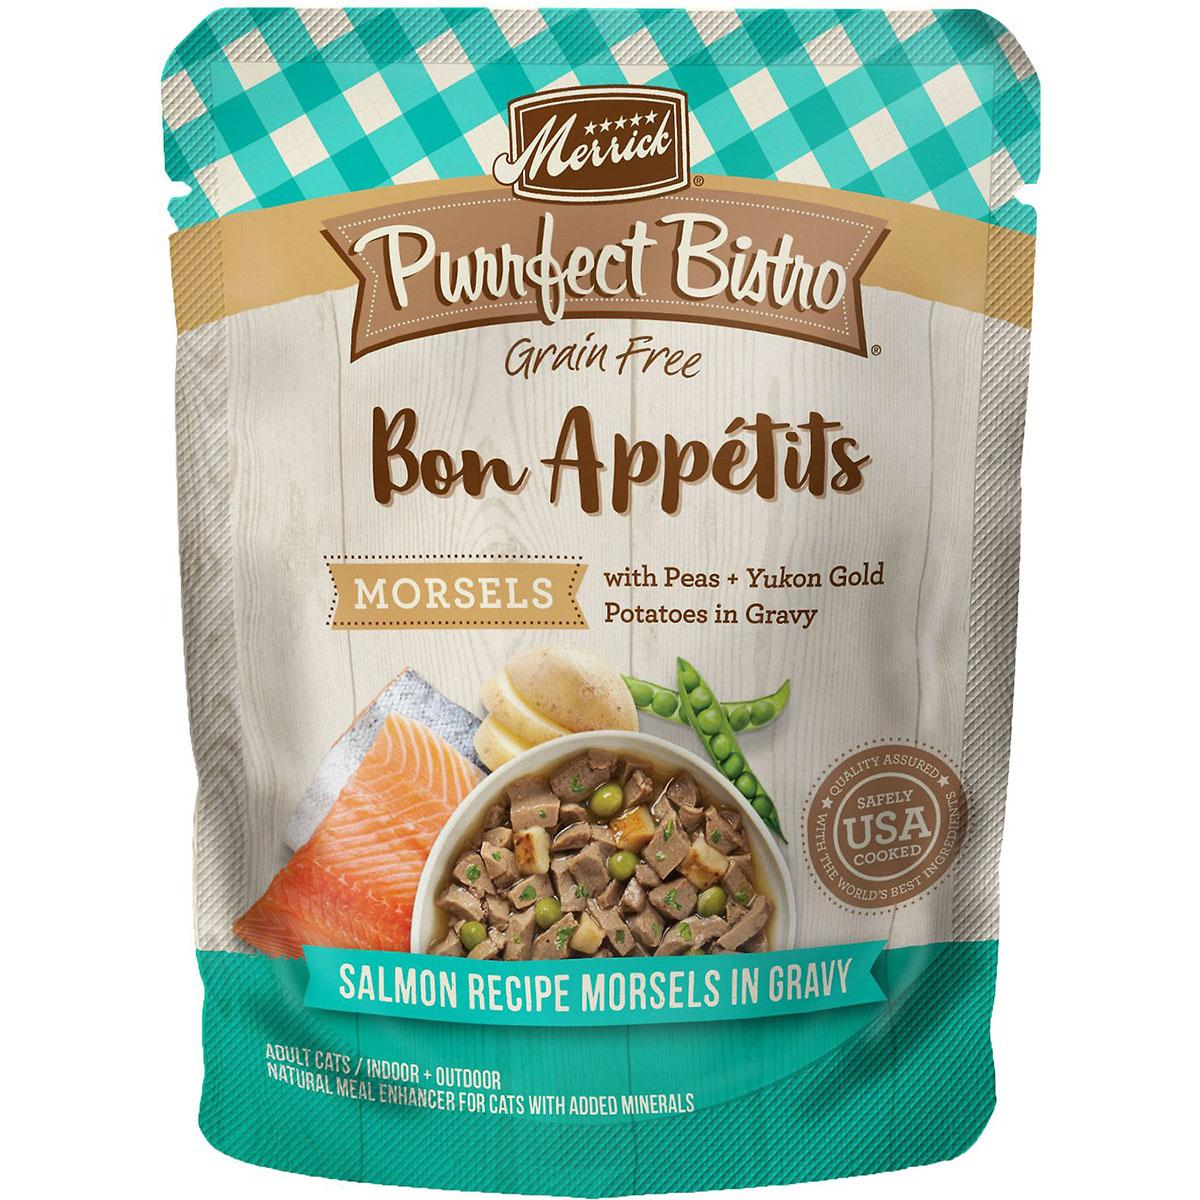 Merrick Purrfect Bistro Bon Appétits Grain-Free Adult Cat Food Pouches - Salmon Morsels in Gravy